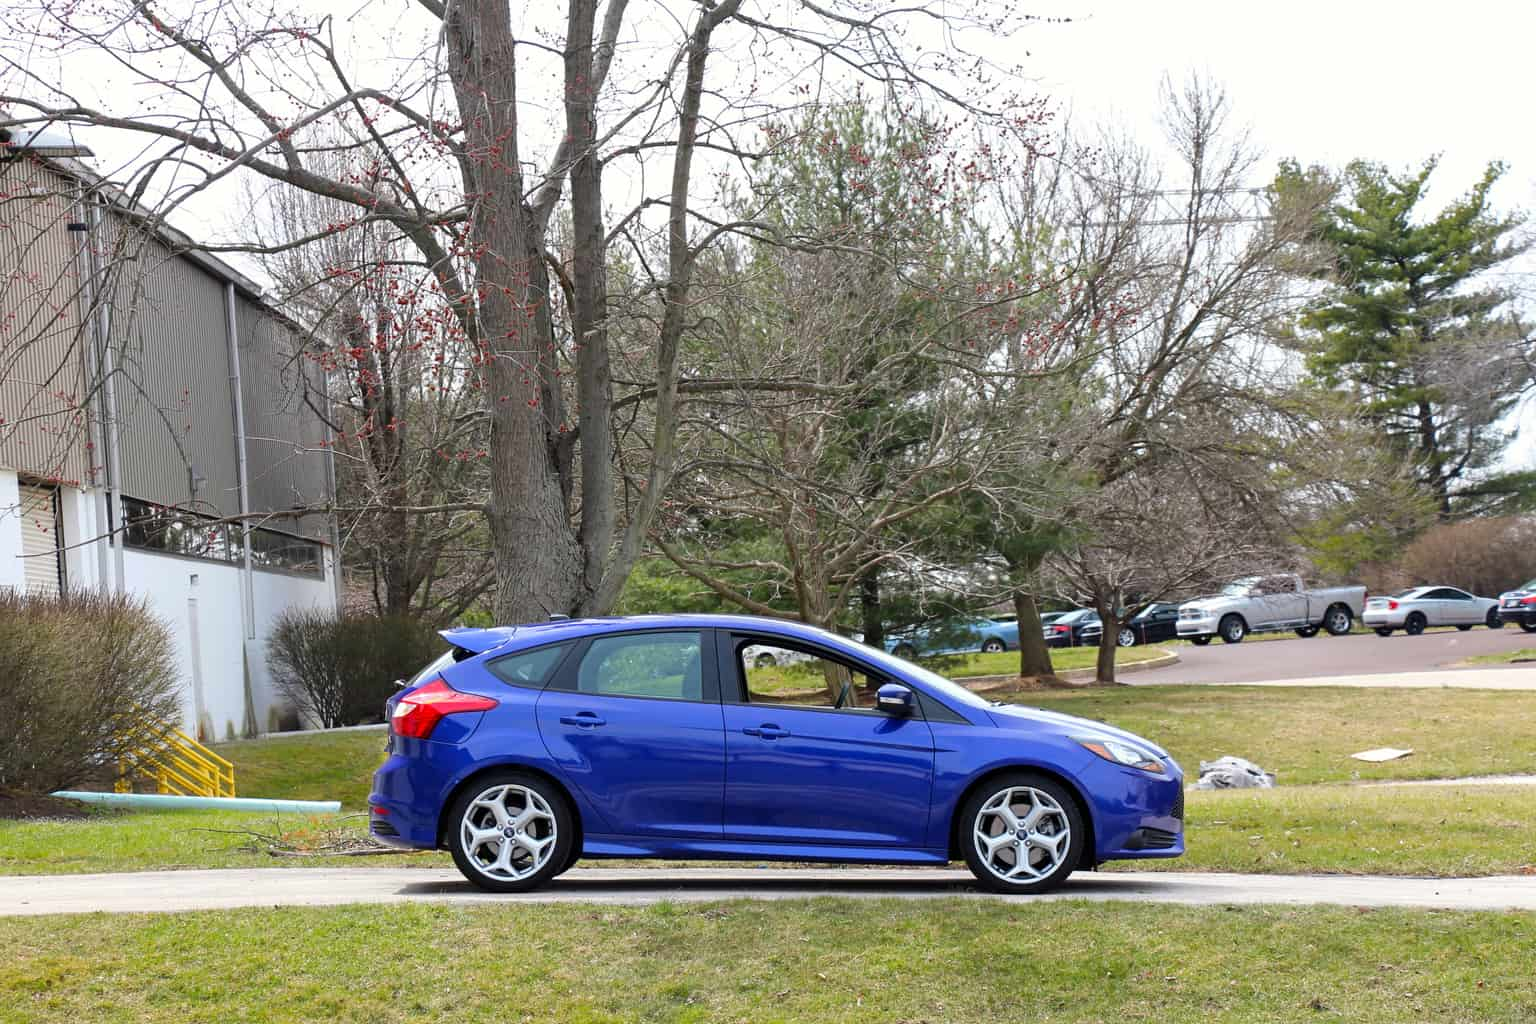 American Auto Reviews: A Sport Compact Car Made in the USA – 2013 Ford Focus ST